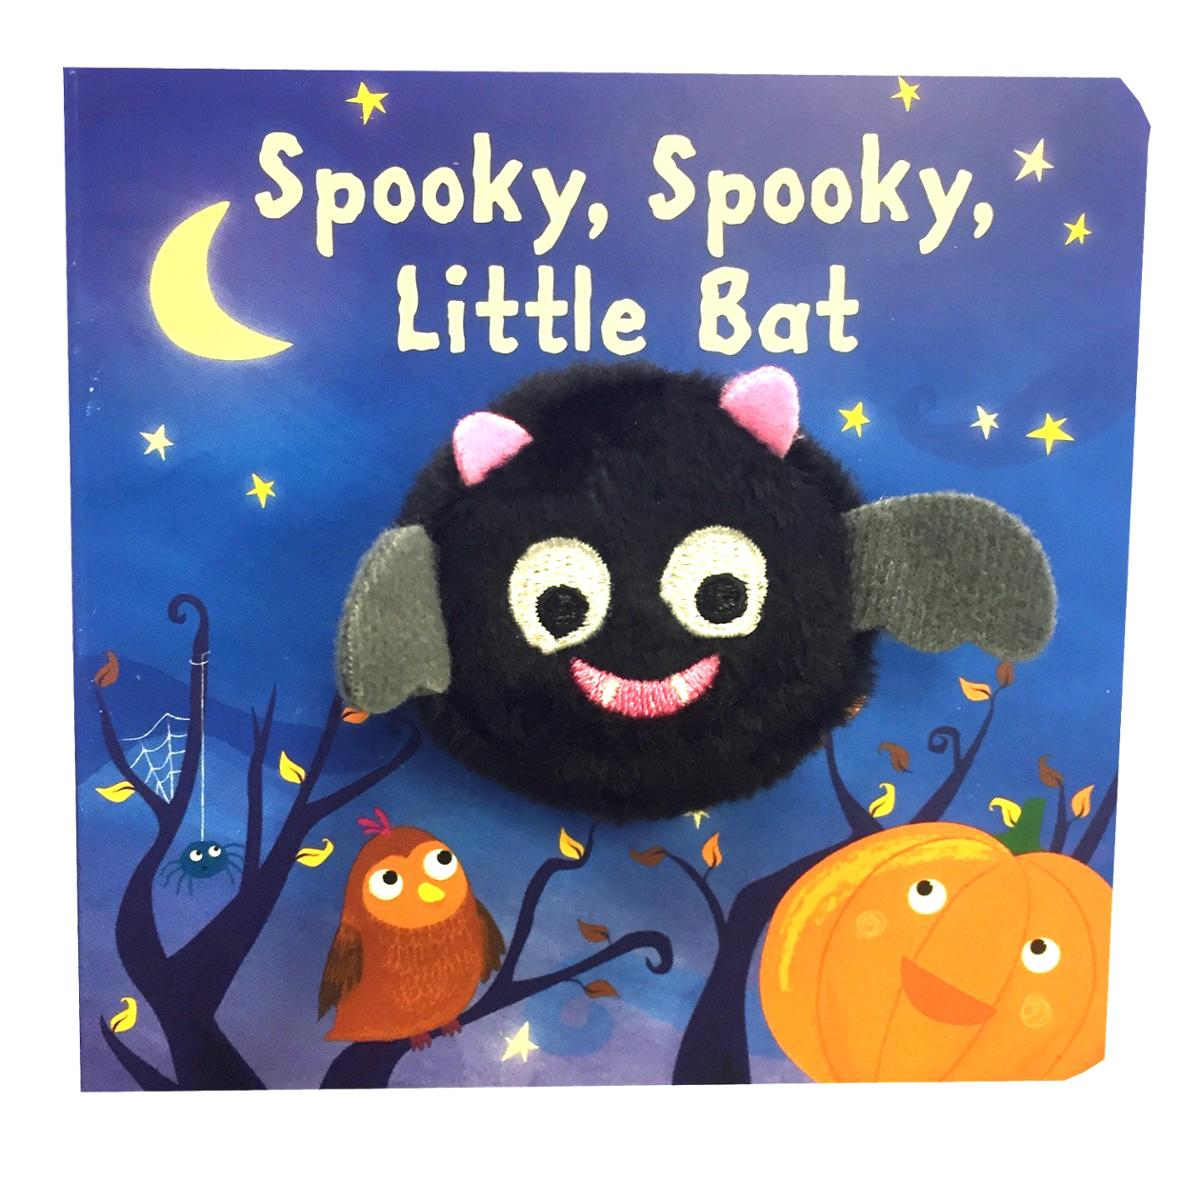 Spooky Spooky Halloween Little Bat Puppet Book